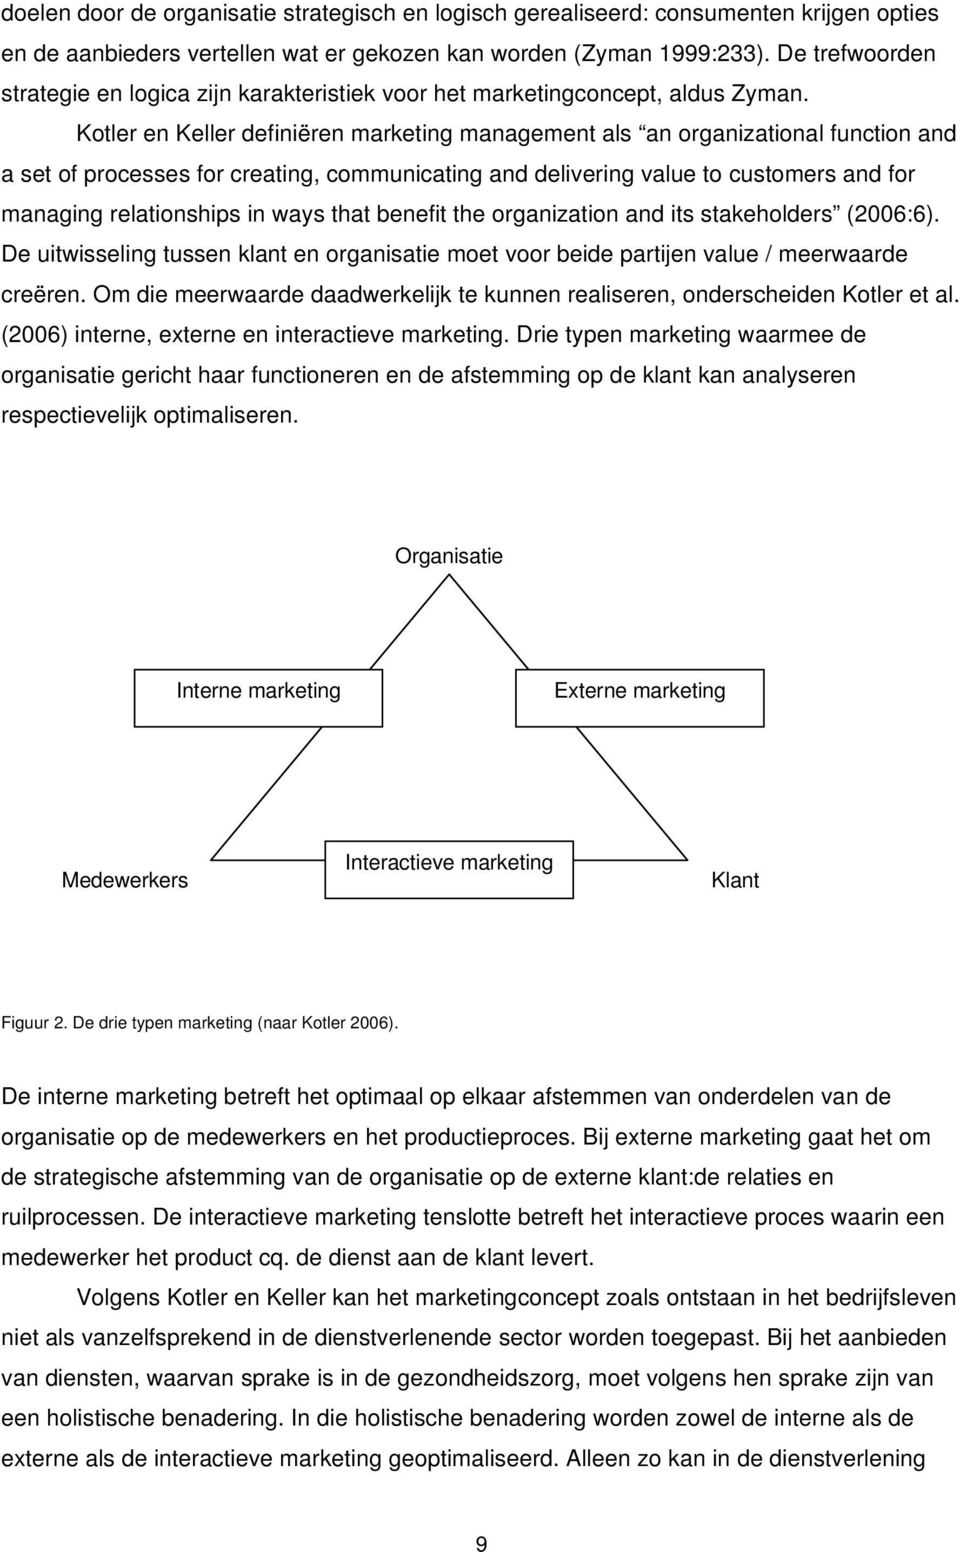 Kotler en Keller definiëren marketing management als an organizational function and a set of processes for creating, communicating and delivering value to customers and for managing relationships in